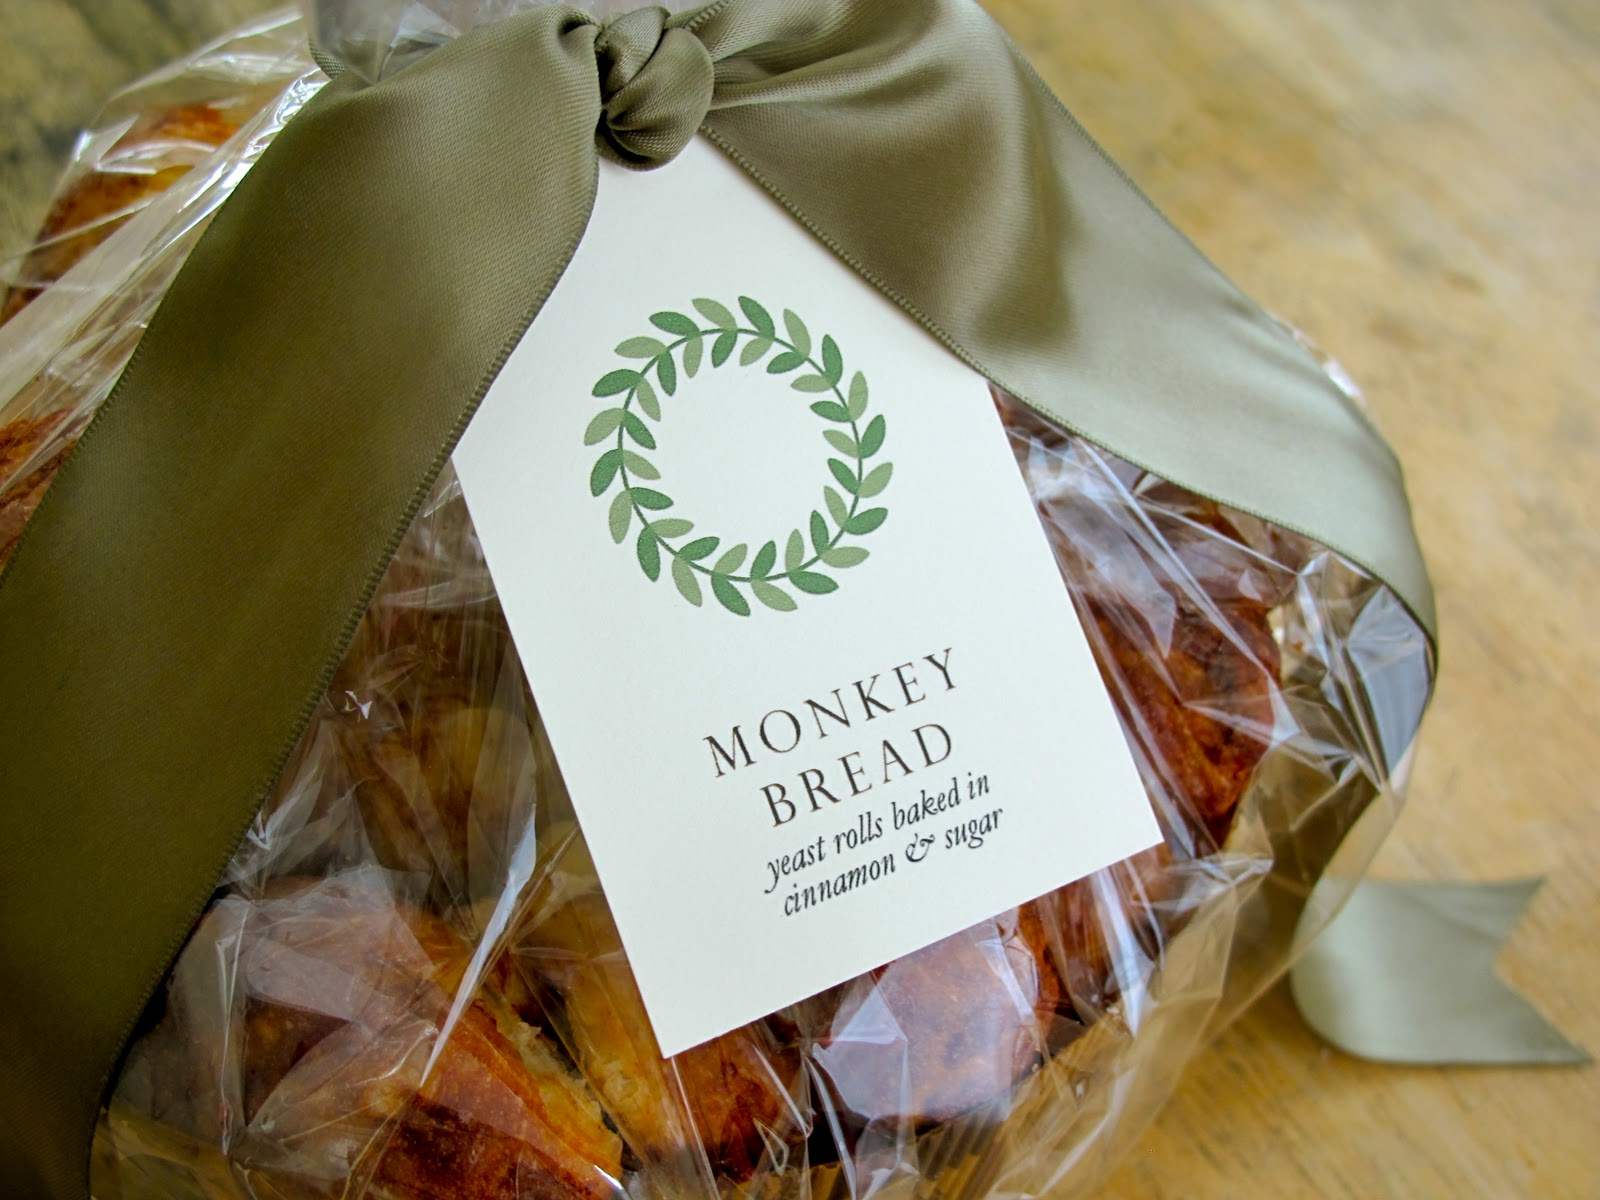 Monkey Bread Homemade Gift Ideas For The Holidays Jenny Steffens Hobick